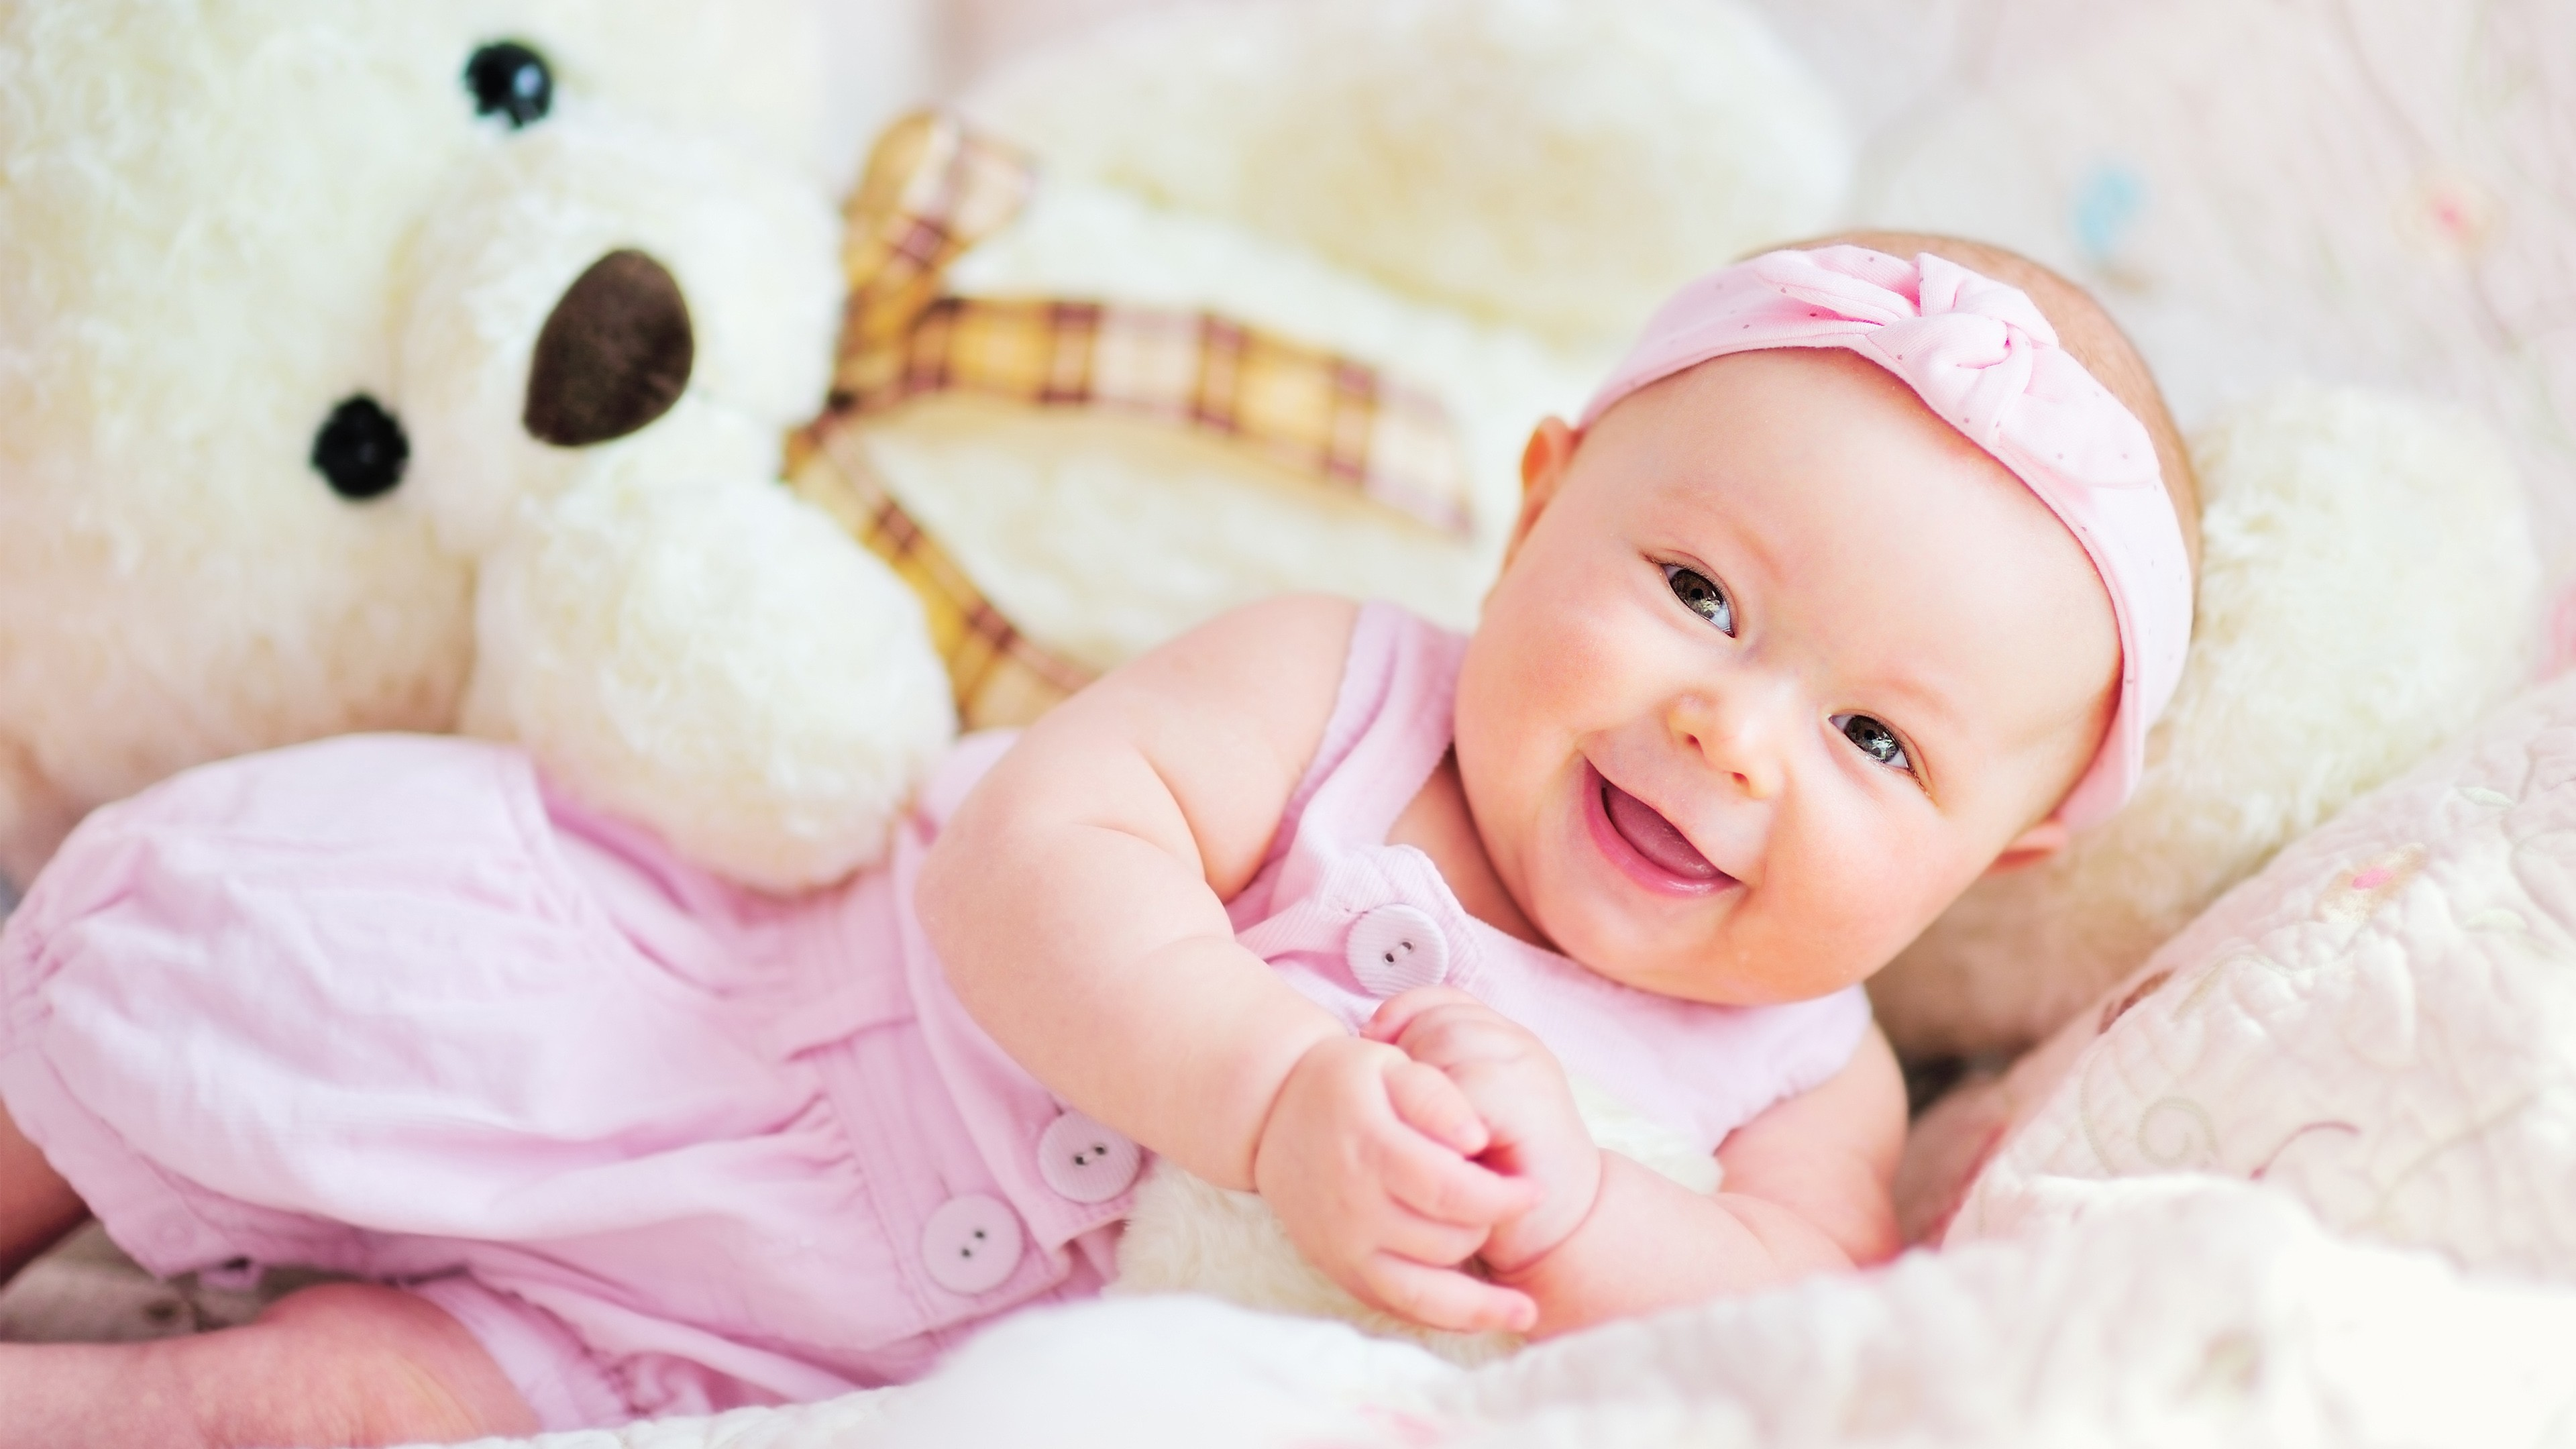 3840x2160 babies free wallpapers Cute Baby Wallpapers So Cute Pinterest